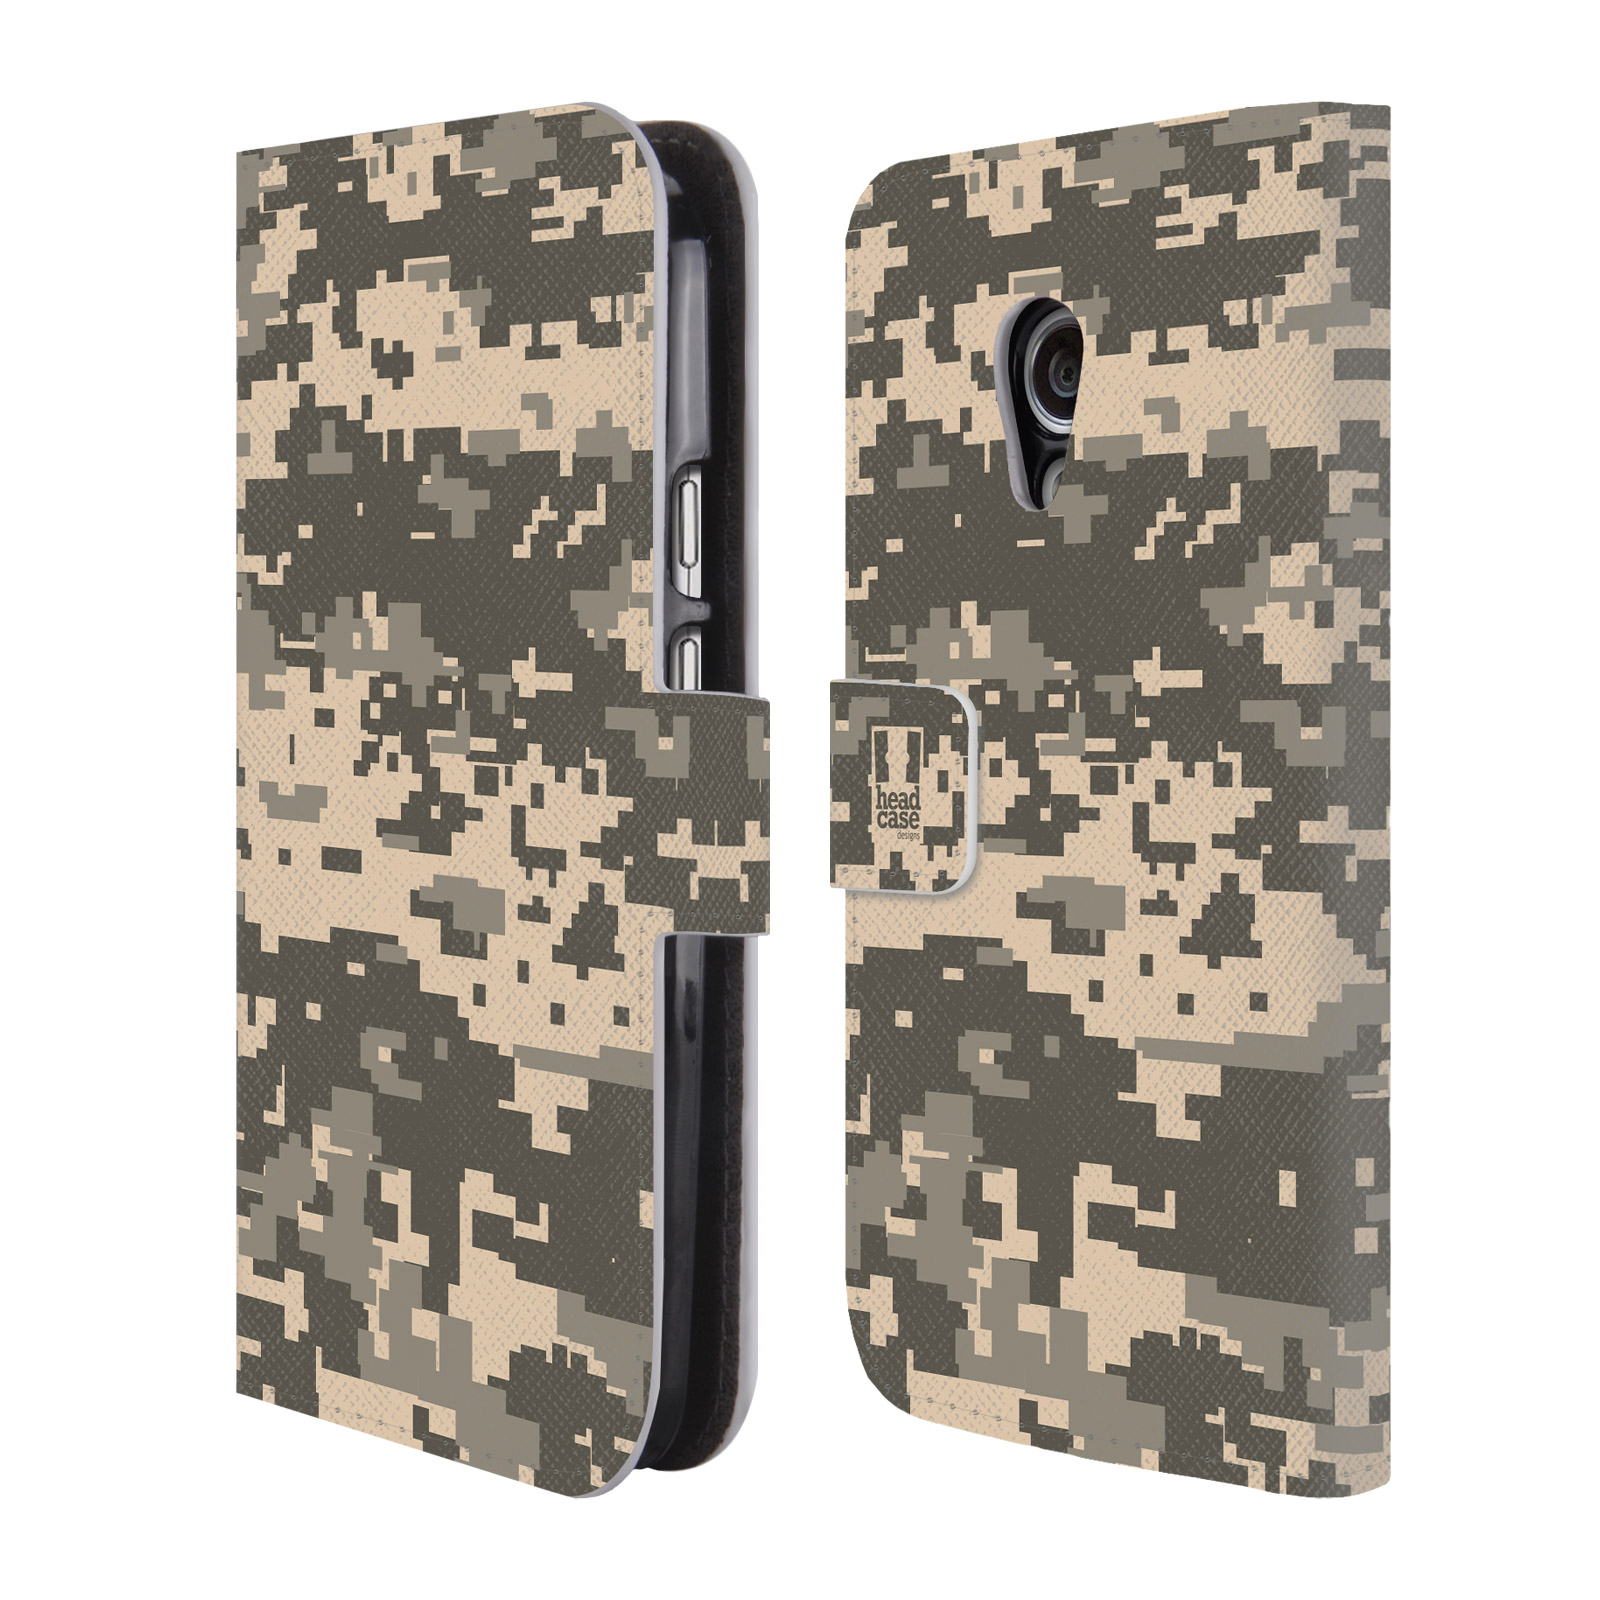 Head Case Design Military Camo 2 Leather Book Wallet